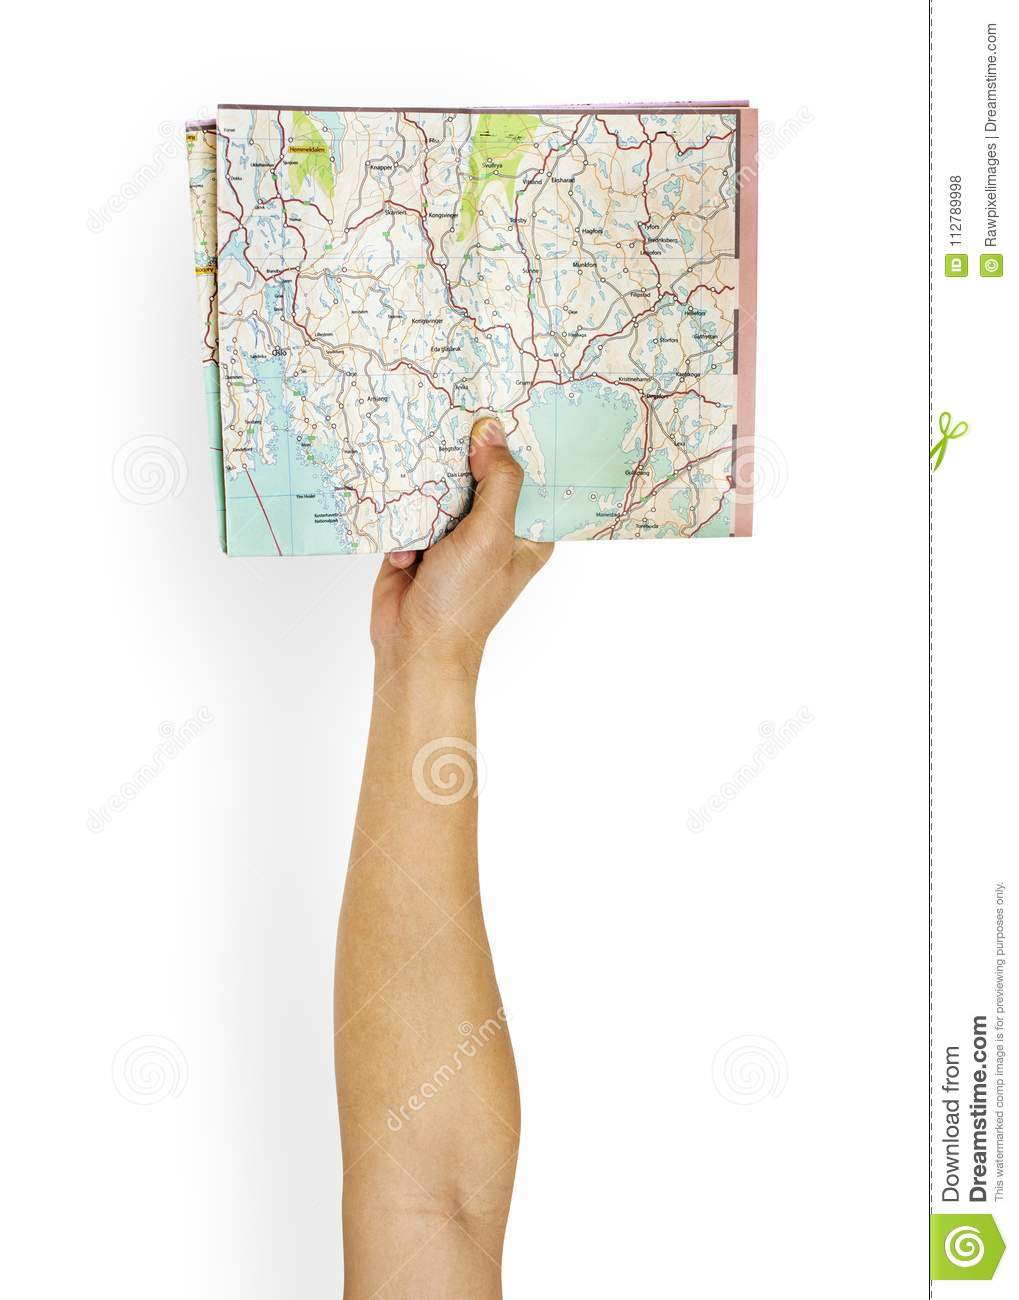 Hand holding a map for directions